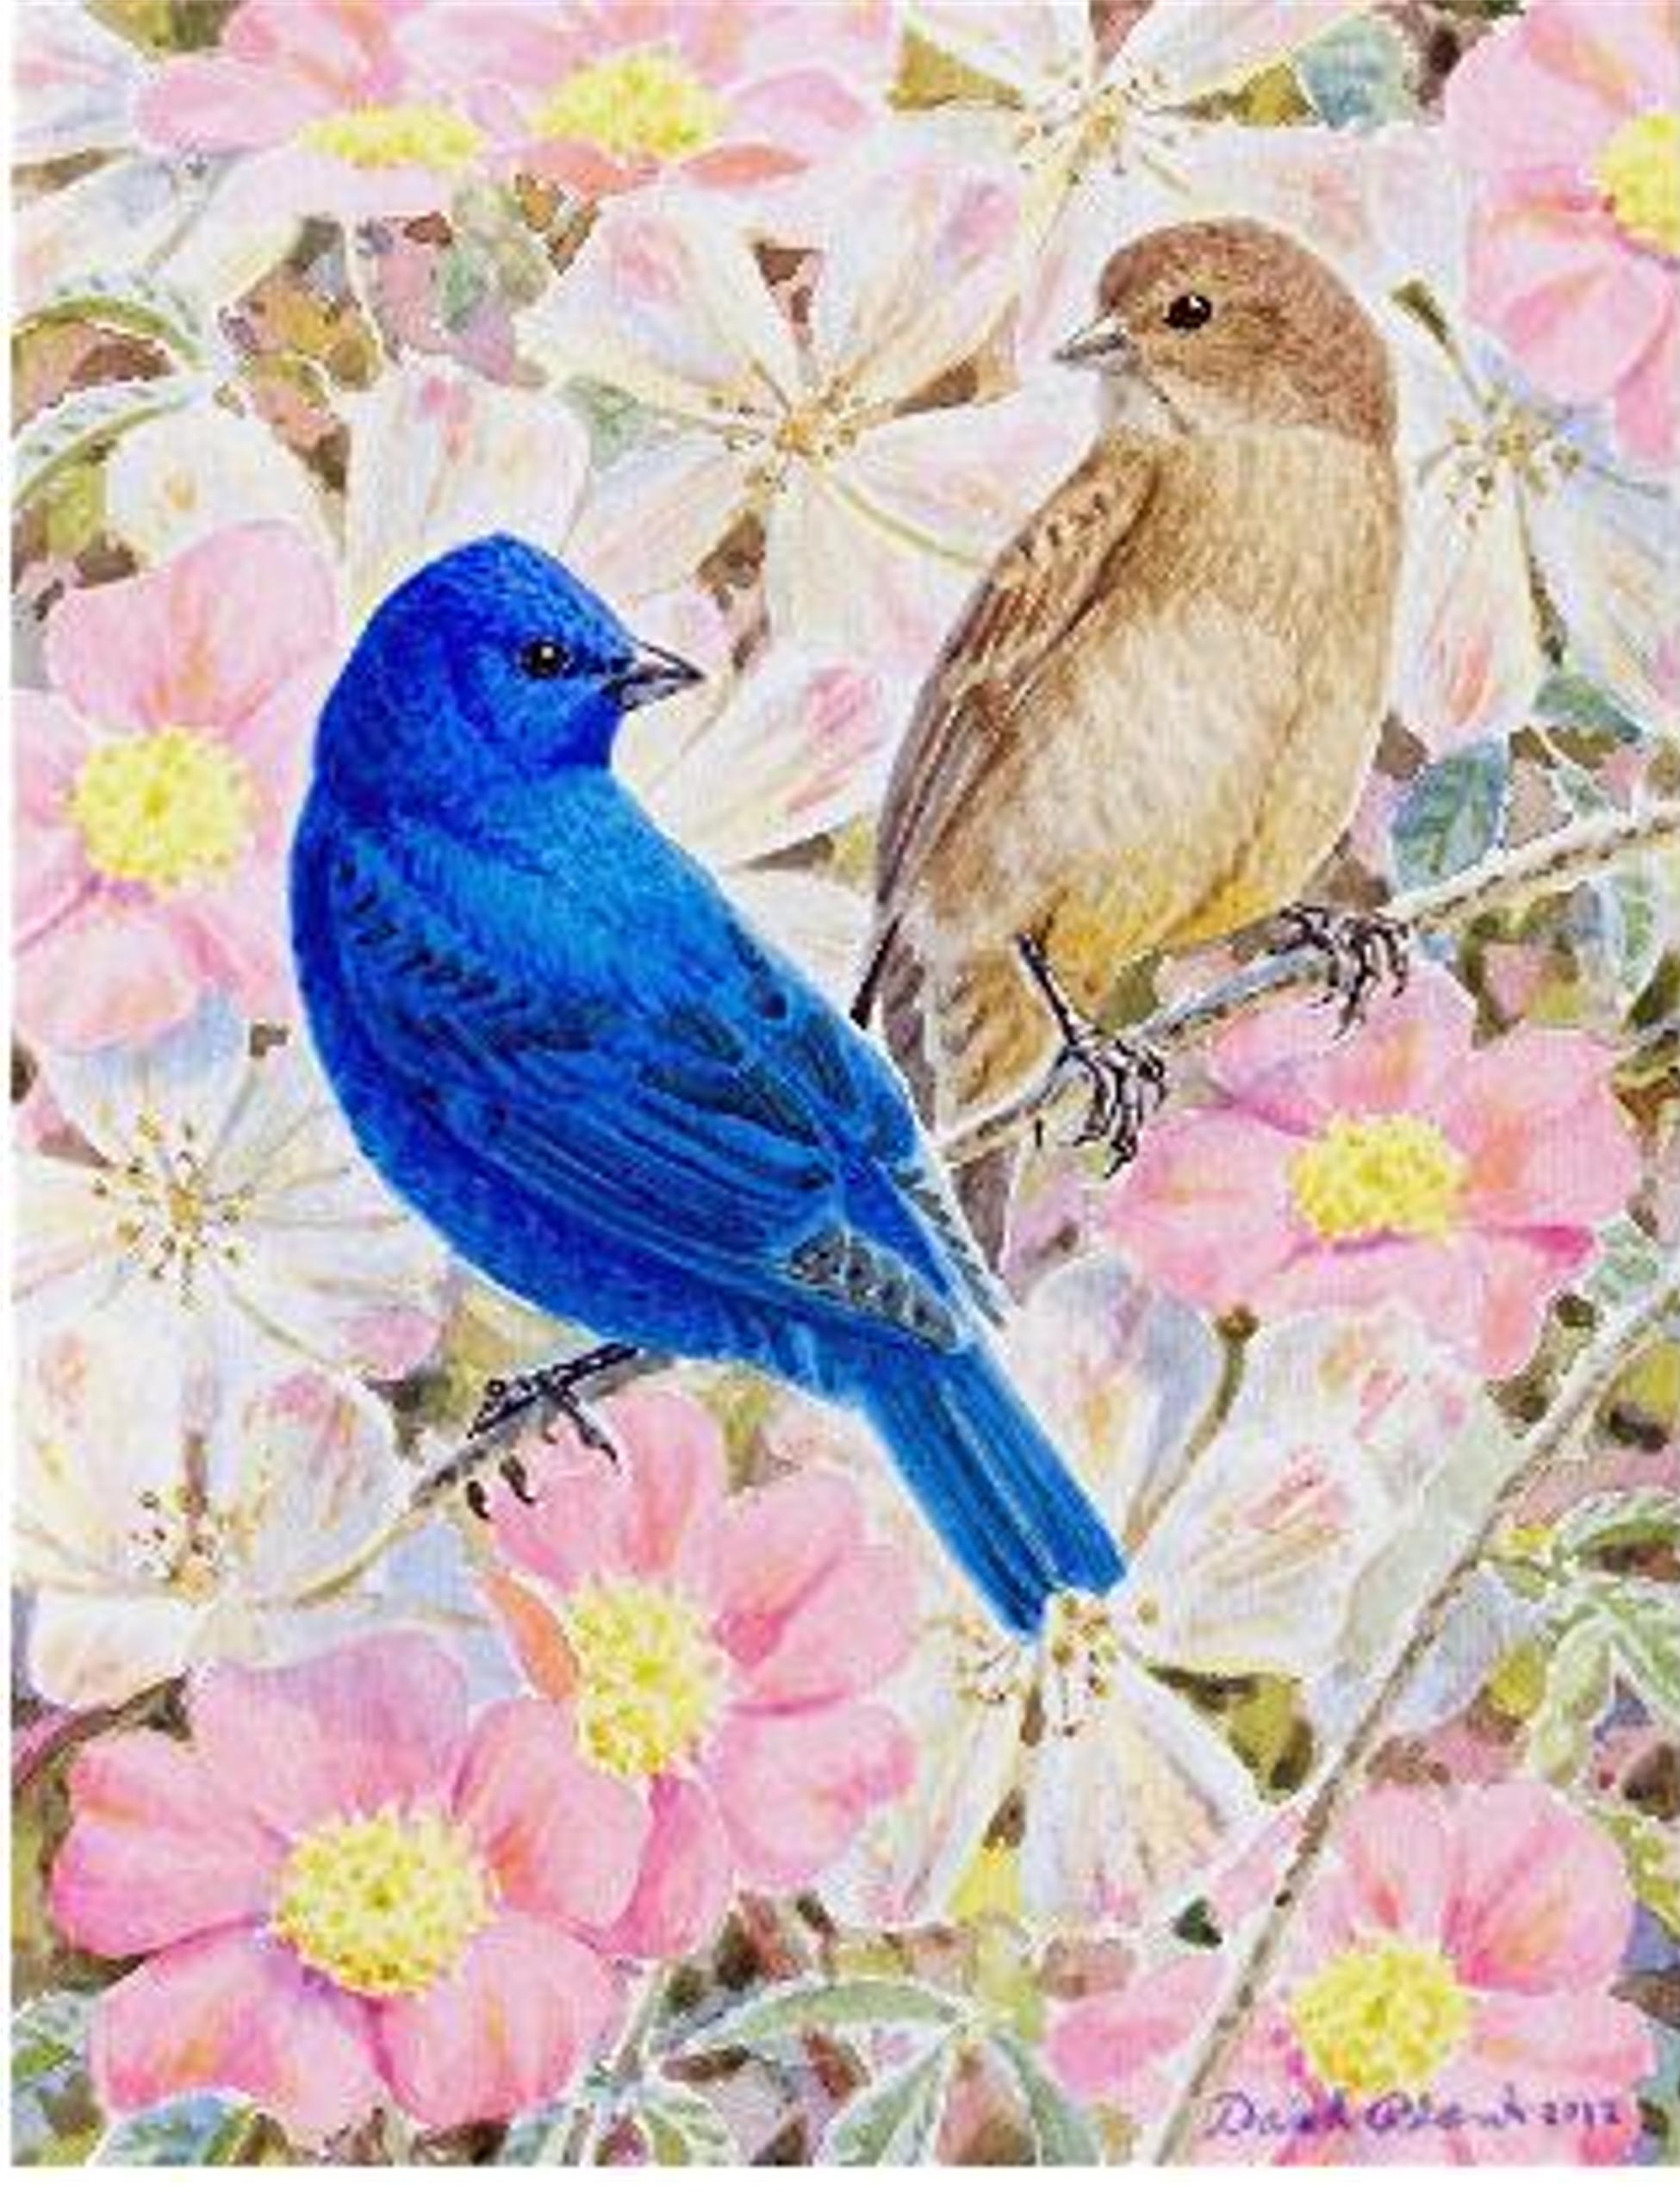 """Indigo Bunting Pair""  Watercolor by David Plank"